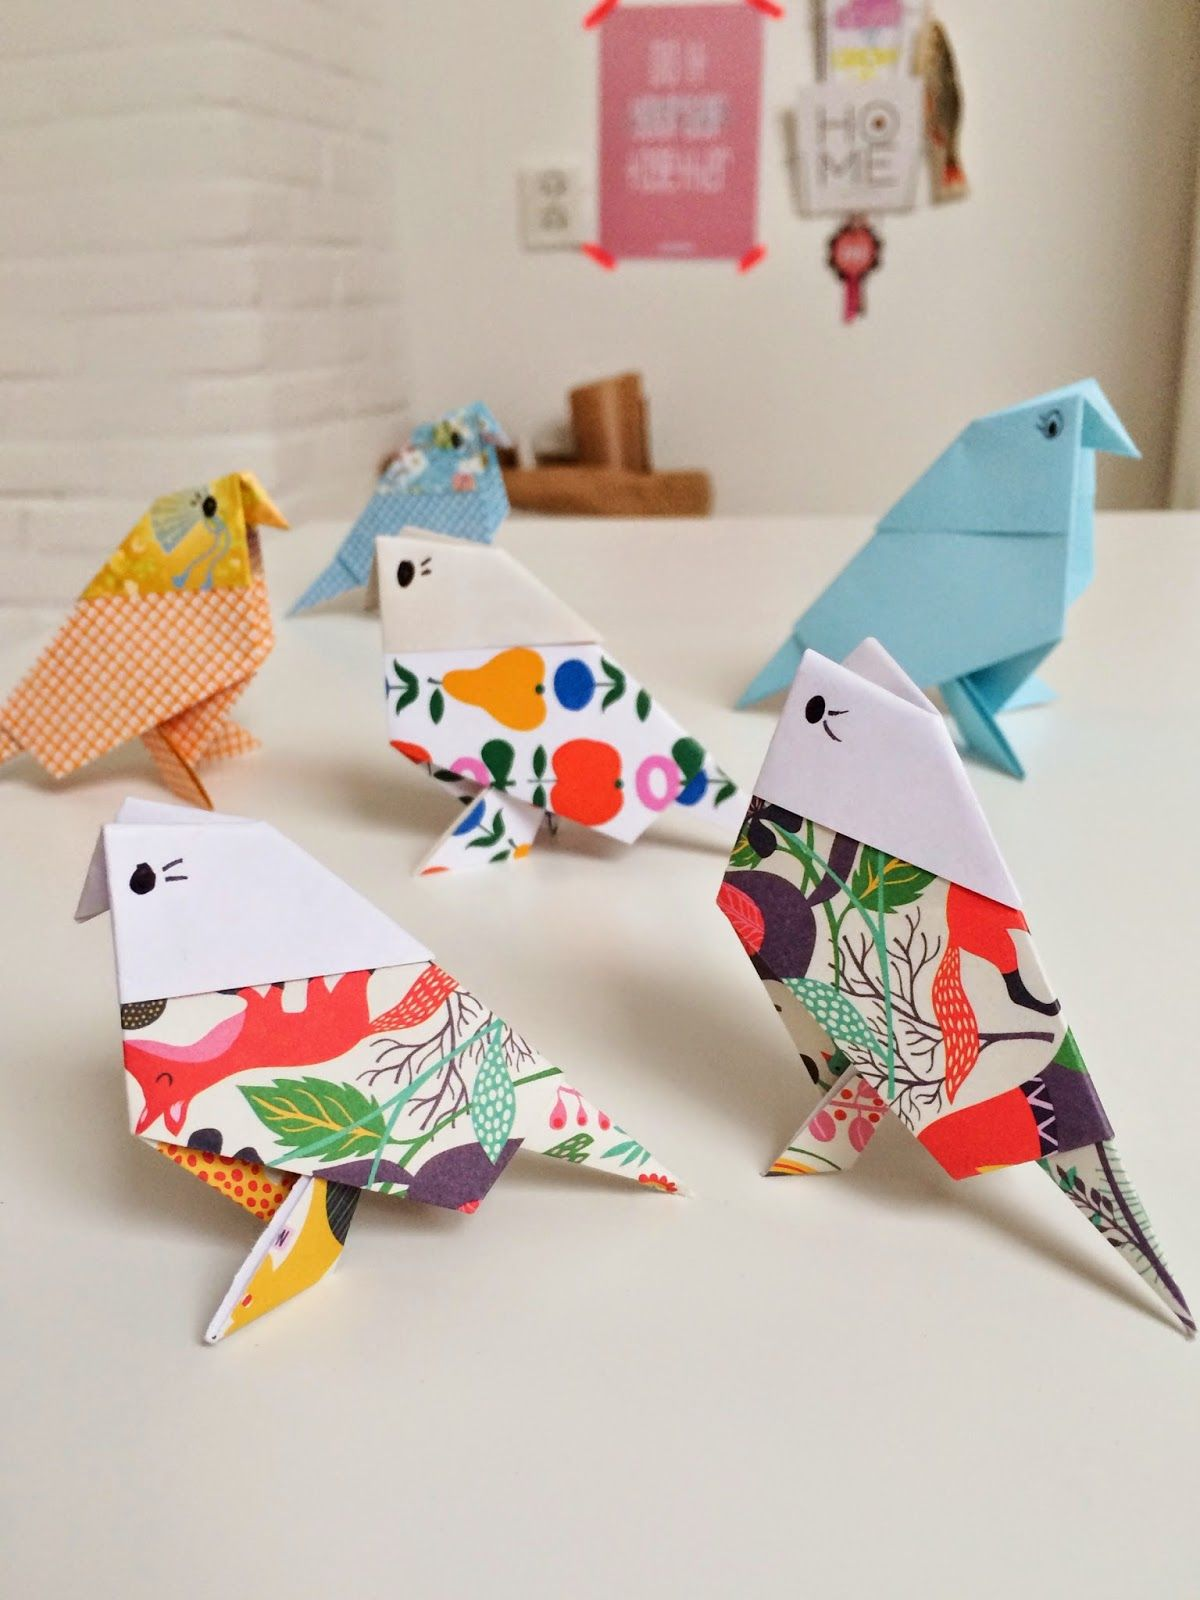 Diy Cupcake Holders Dear Wee Hooligans Origami Swan Diagram Embroidery Introduce Your Kids To The Fun They Can Have Creating With A Piece Of Paper Enjoy Our 15 Kid Friendly Craft Collection